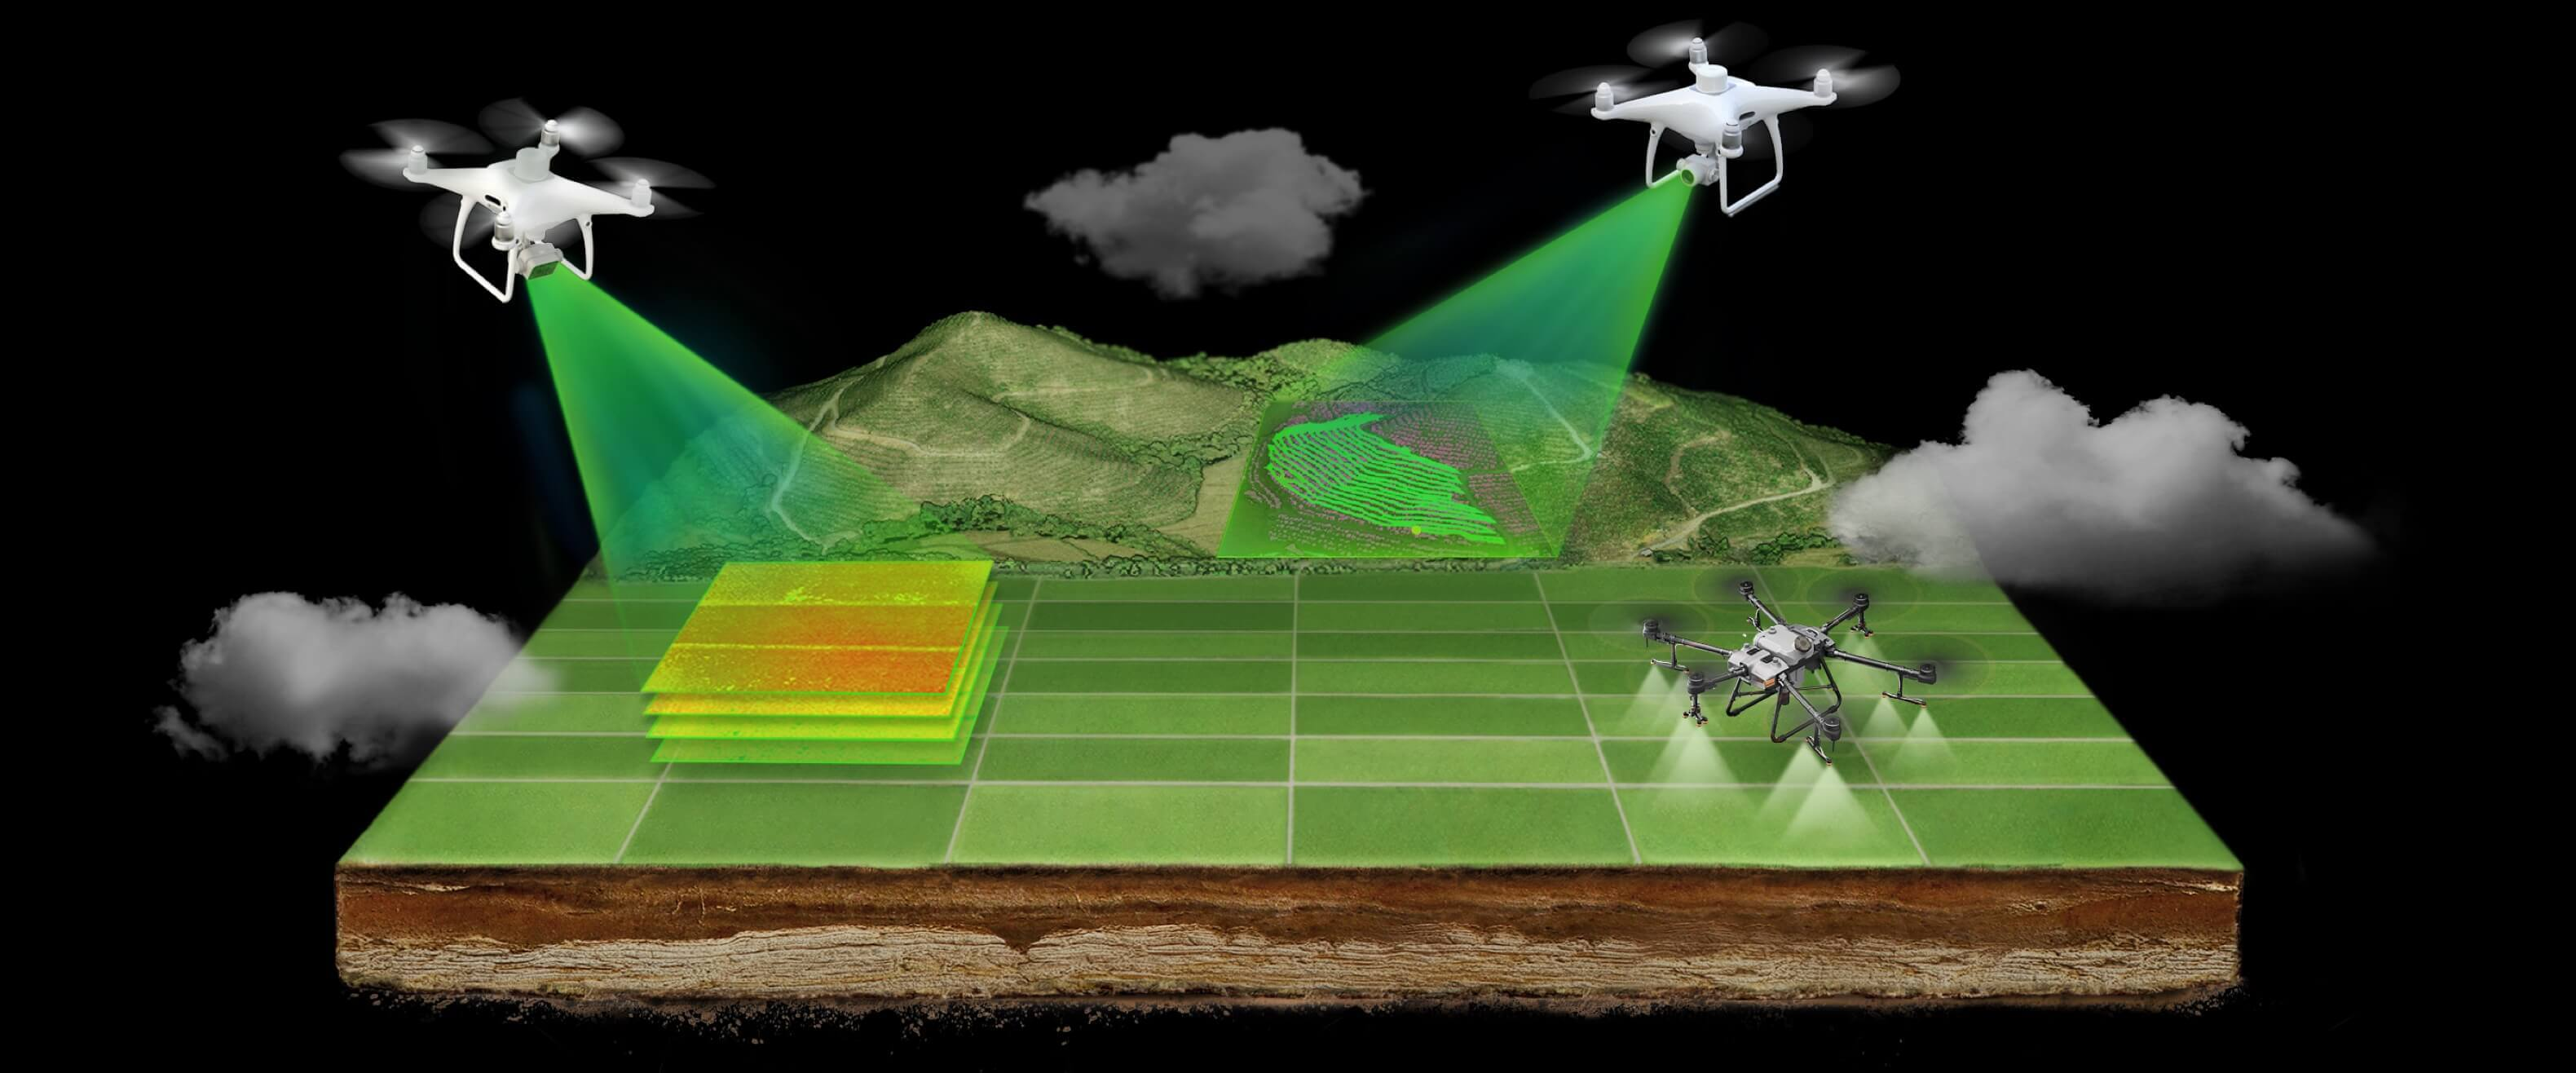 AGRAS T30   Digital Agriculture is Here